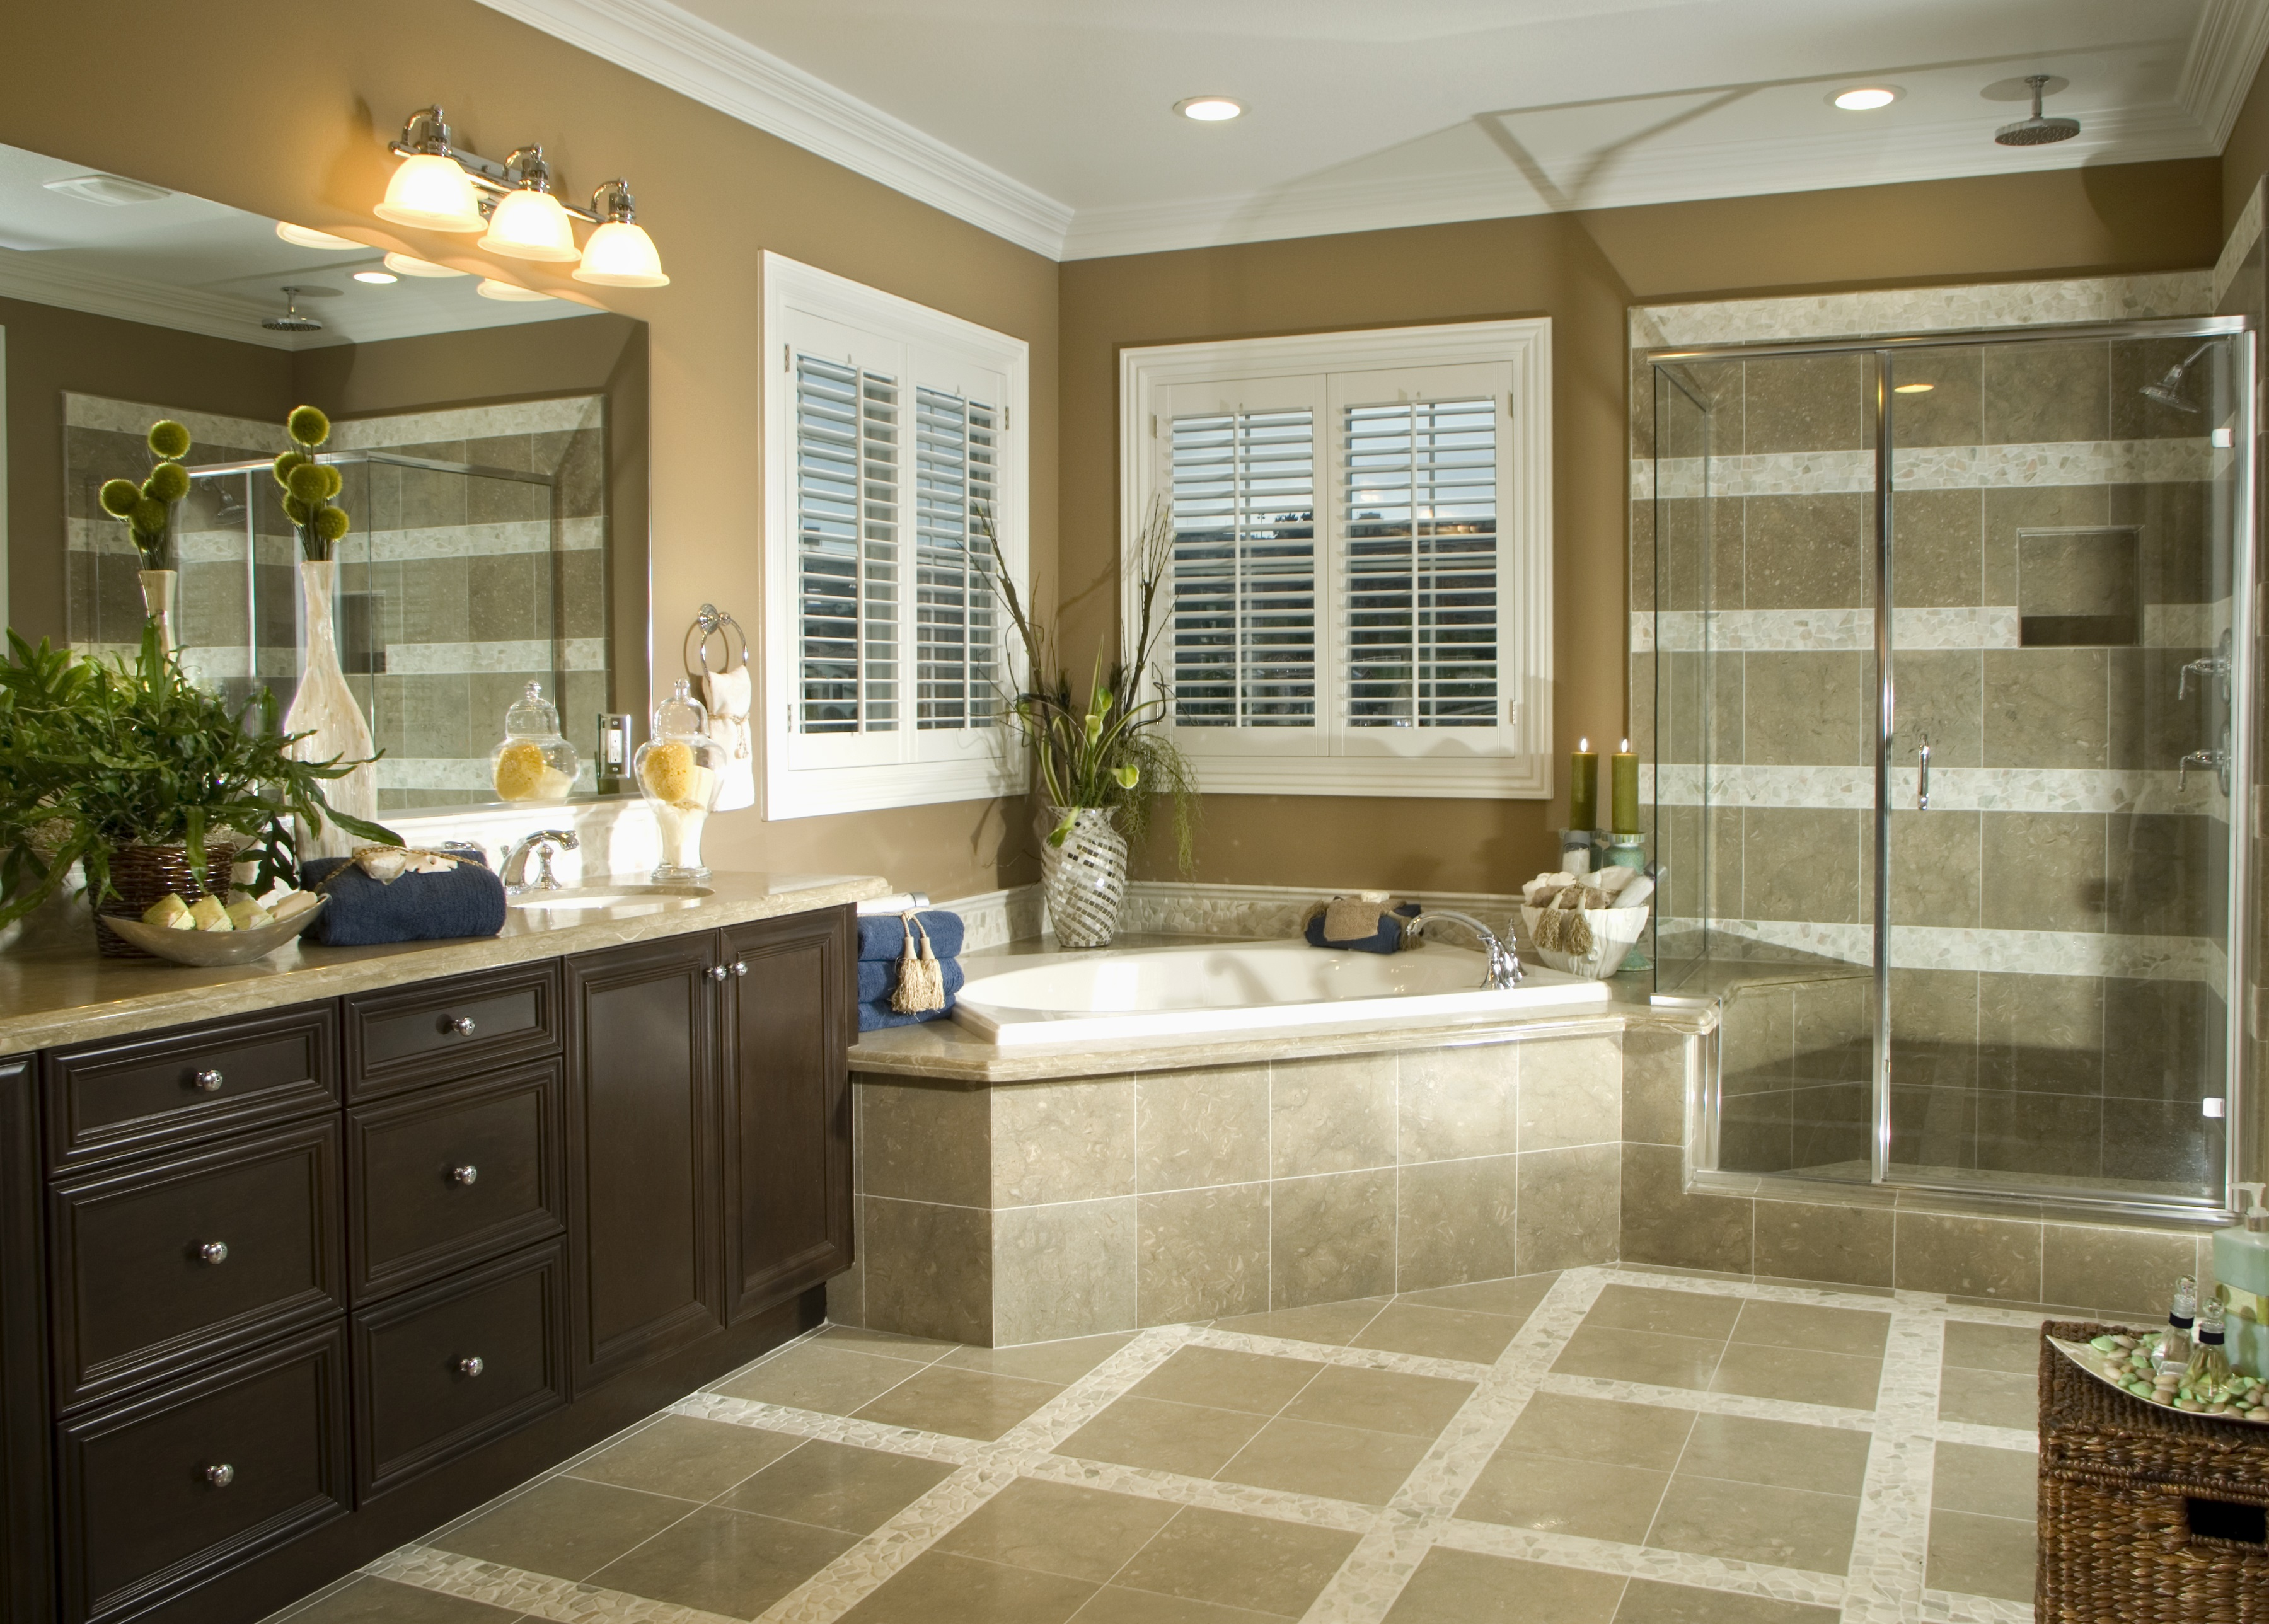 Bathroom Remodel Cost Nj cost of remodeling a bathroom in nj. nj bathroom remodeling cost